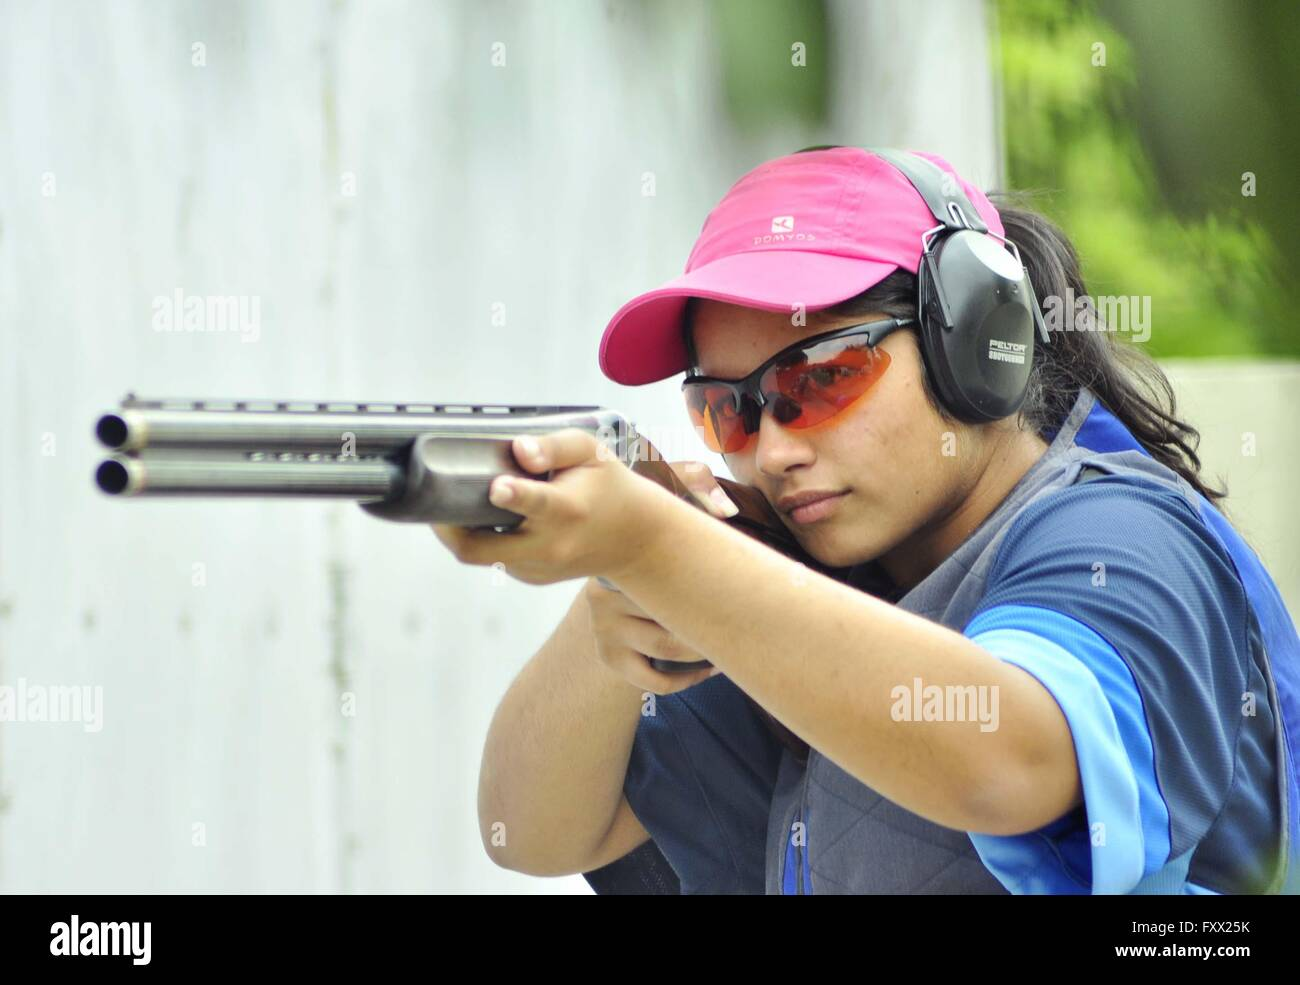 how to become a professional shooter in india